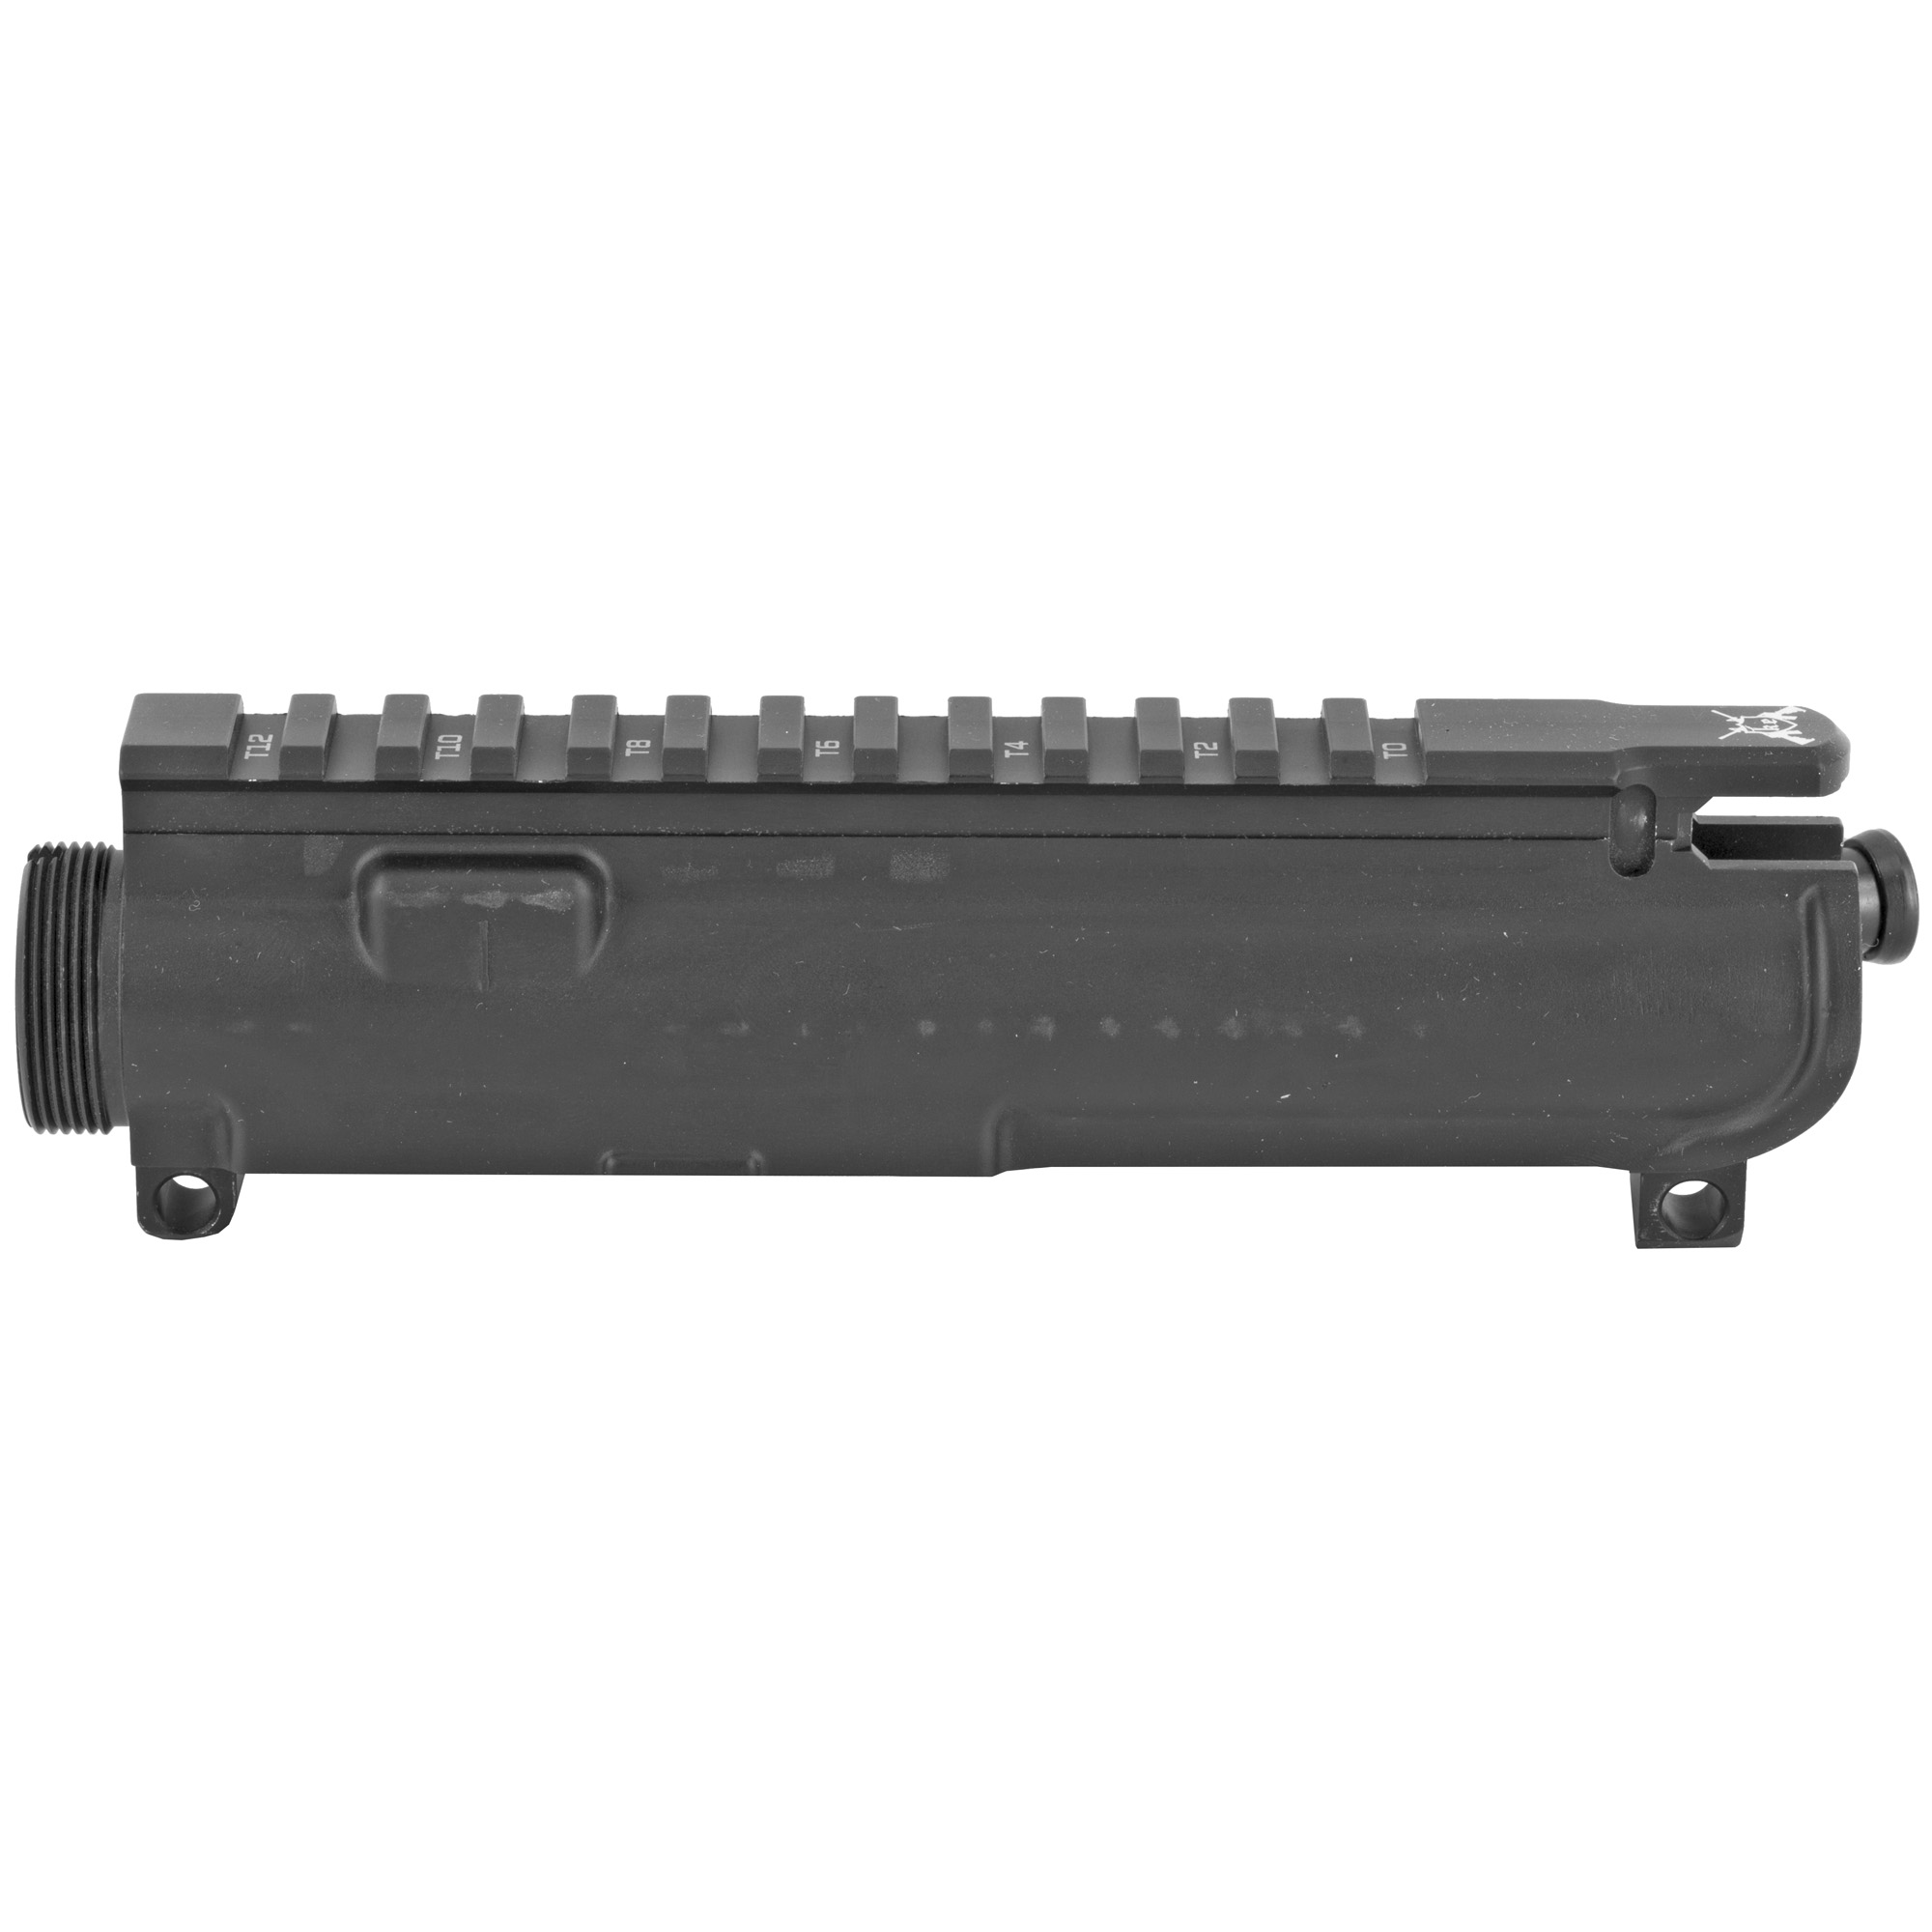 """The KE-15 forged flat top complete upper receiver is precision machined from 7075-T6 forgings to MilSpec standards"""" made to fit all M16/M4 rifles and carbines. Featuring USGI type T marked top"""" making it easy to remount any of your tactical accessories. M4 Feed ramps are machined into the upper. Milspec type III hard anodized and ready to be assembled with your choice of components."""